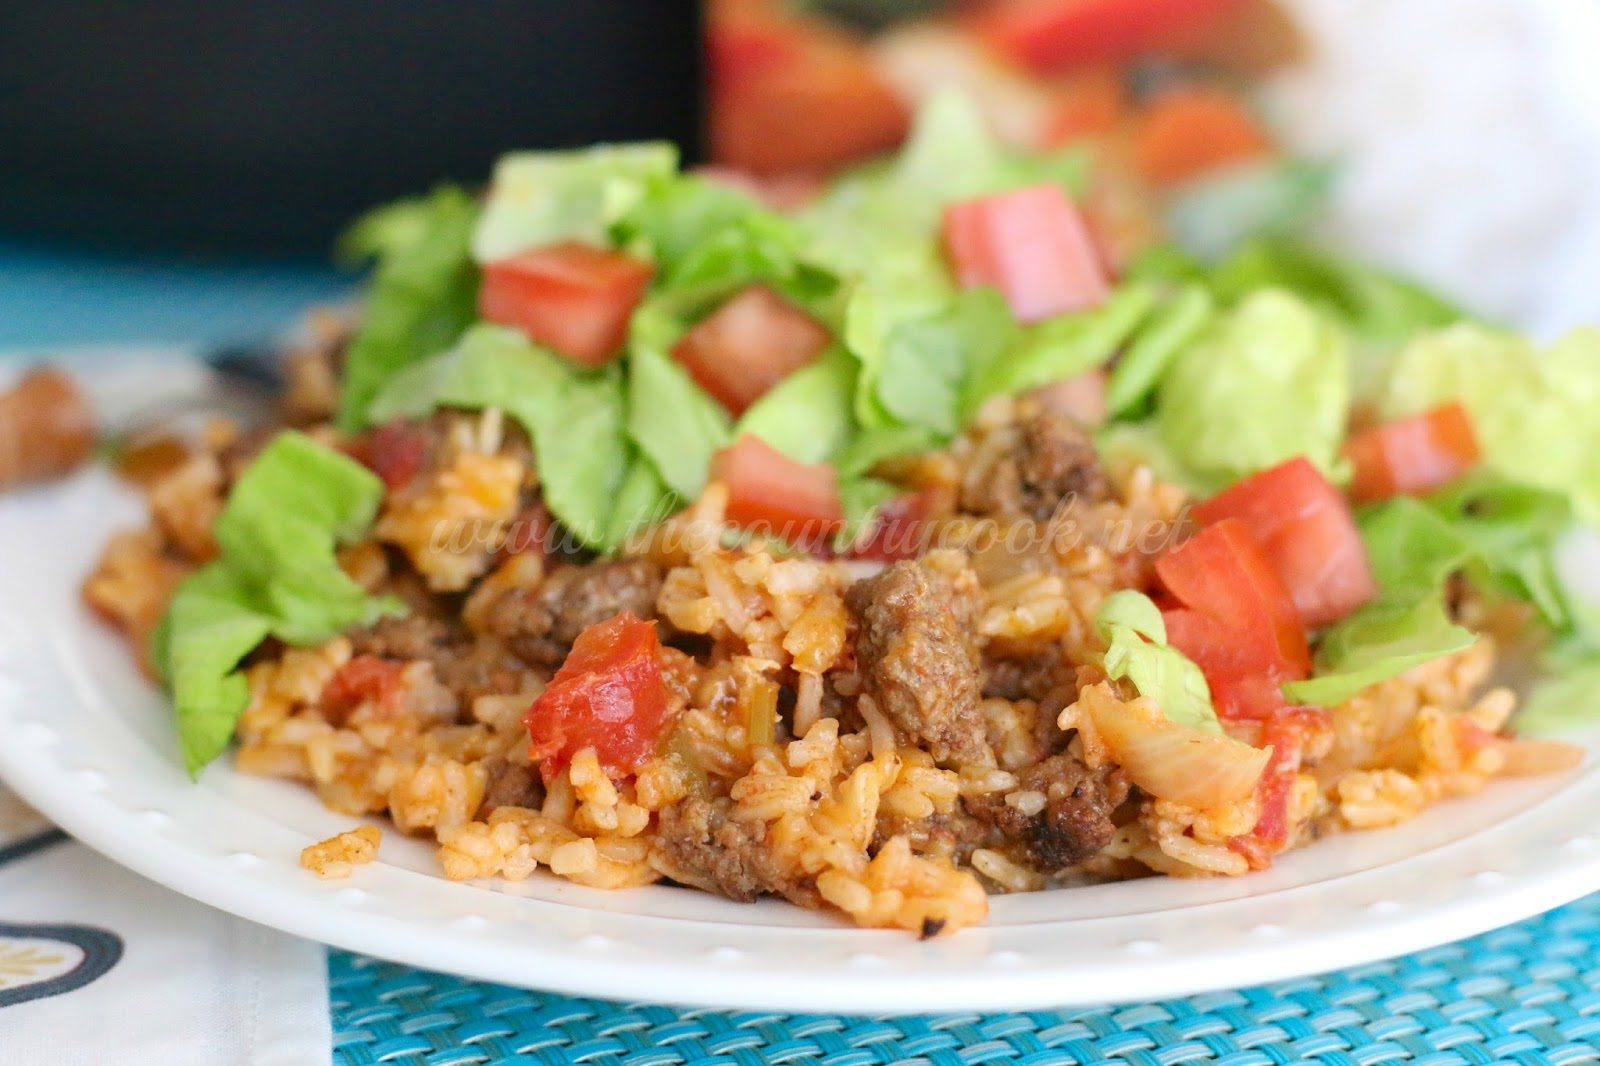 I Love My Mom S Spanish Rice So I Figured Why Not A Taco Version And Let Me Tell You This Turned Out Crazy Good And It Made For Awesome Leftovers